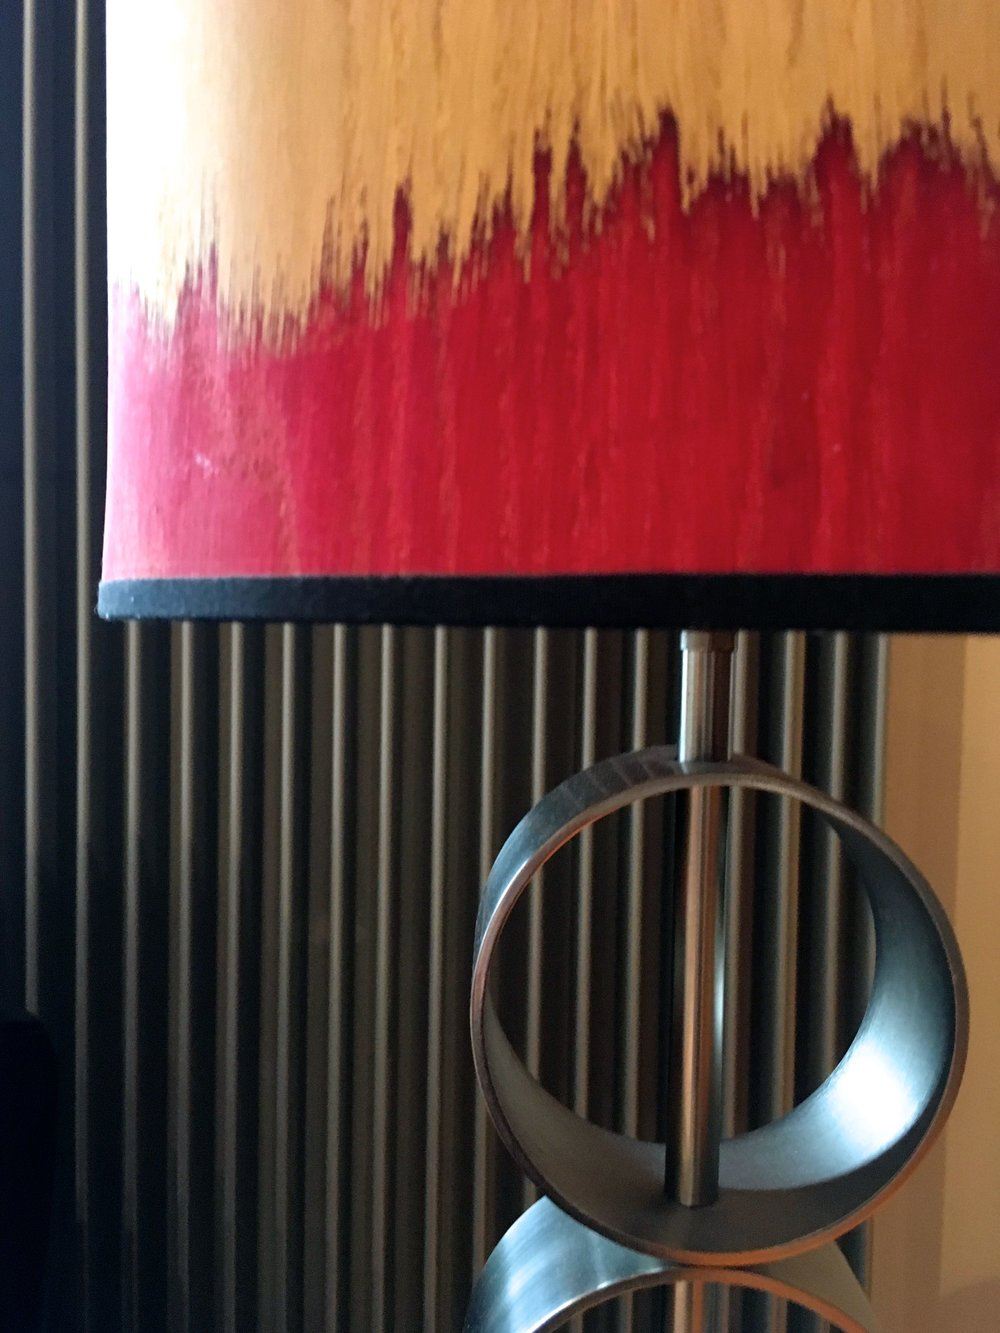 This paper lampshade adds texture with it's feathered pattern and contrasts with the lamp base and the radiator breaking it up nicely #notcompletewithout